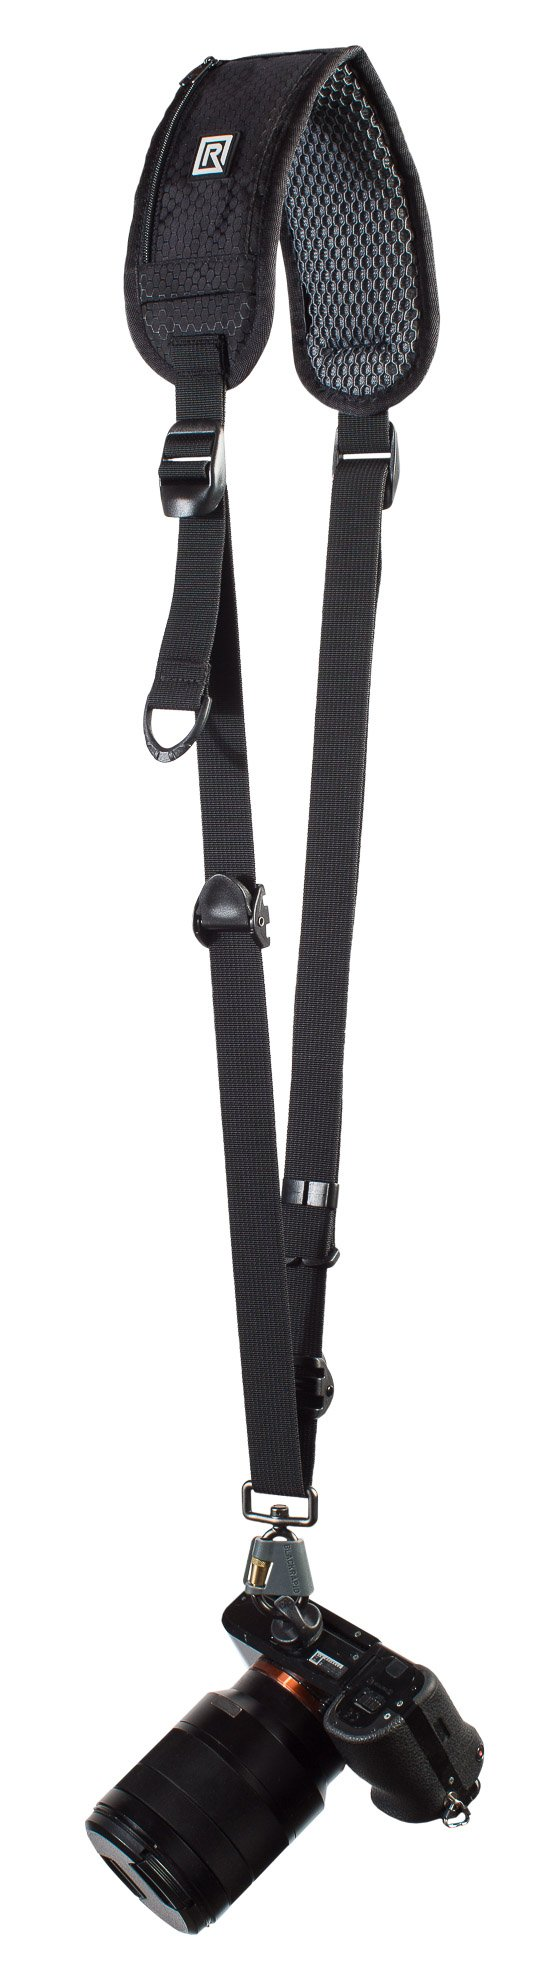 BLACKRAPID Classic Retro (RS4) Camera Strap, 1pc of Safety Tether Included - 10th Anniversary Edition